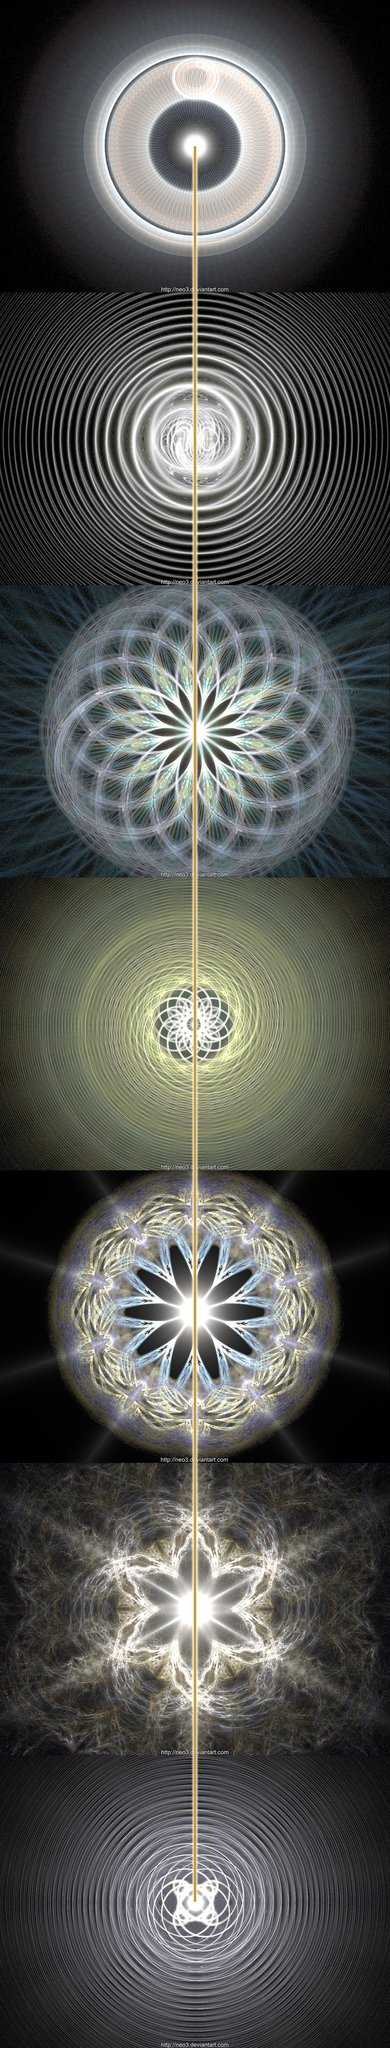 http://shedsenn.files.wordpress.com/2011/09/kundalini_and_the_7_chakras_by_neo3.jpg